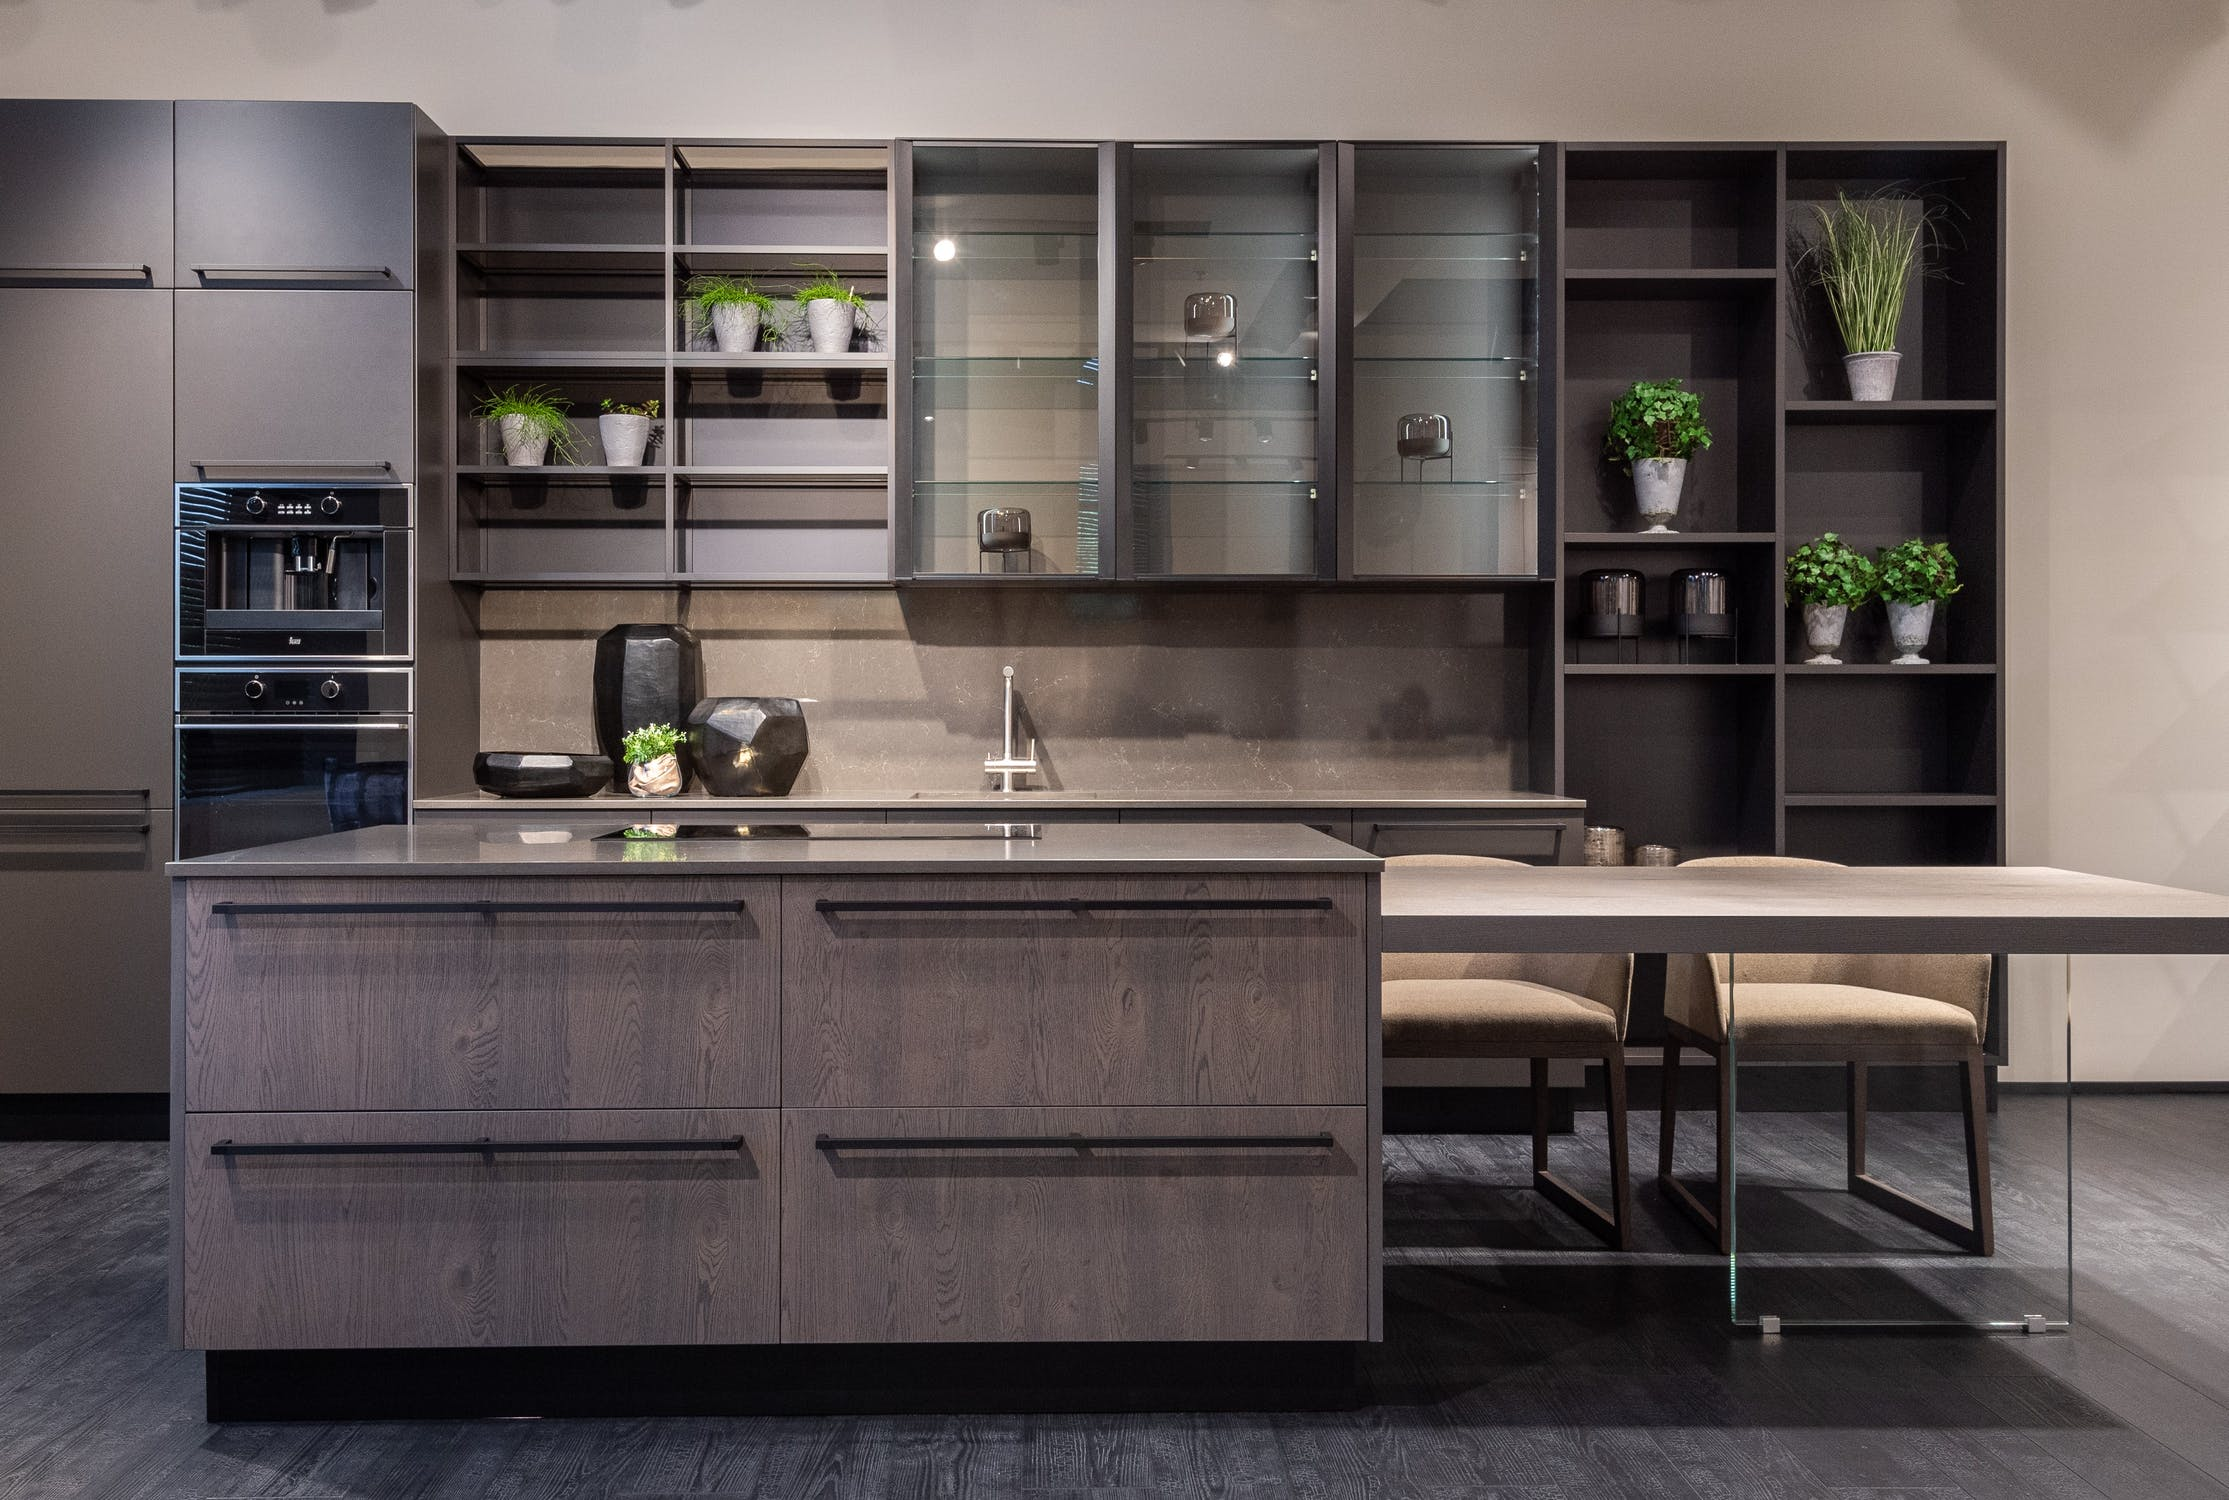 The 2021 Best Sustainable Kitchen Products